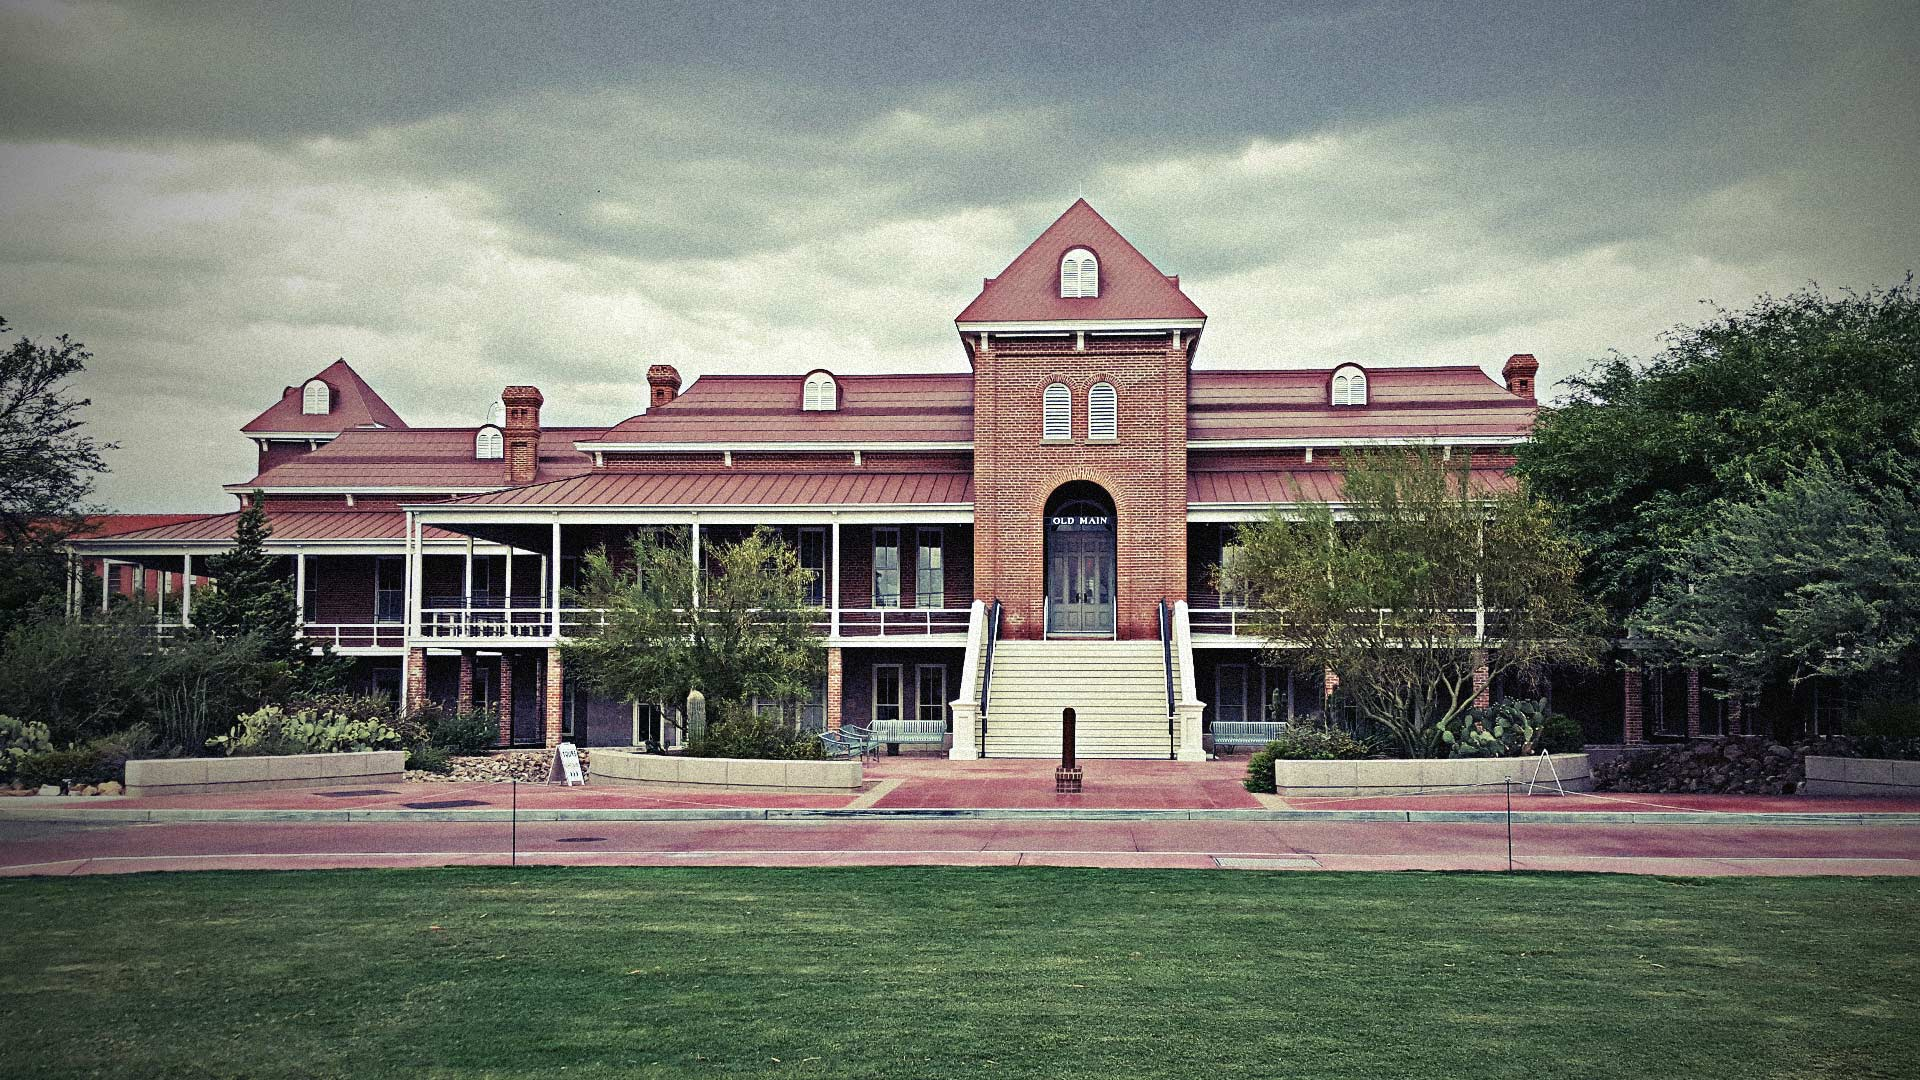 The iconic Old Main building on the campus of the University of Arizona.